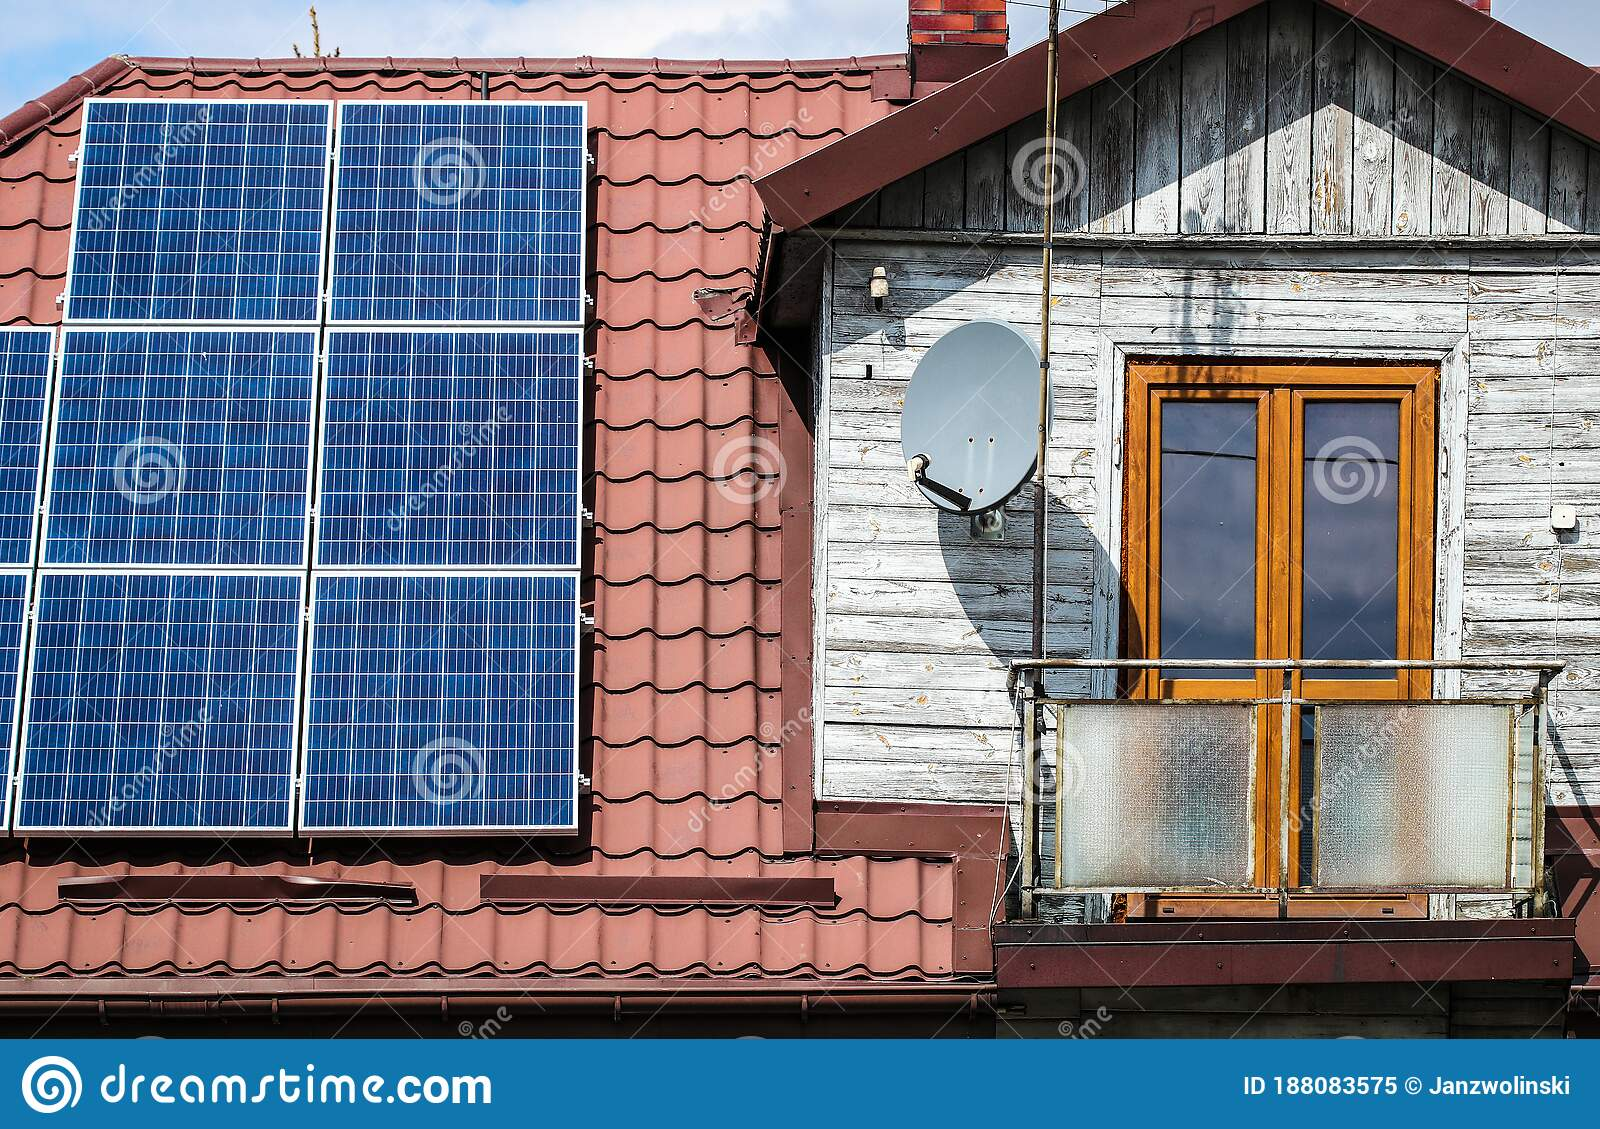 Solar Panels On Old Wooden House Stock Image - Image of outdoors,  architecture: 188083575